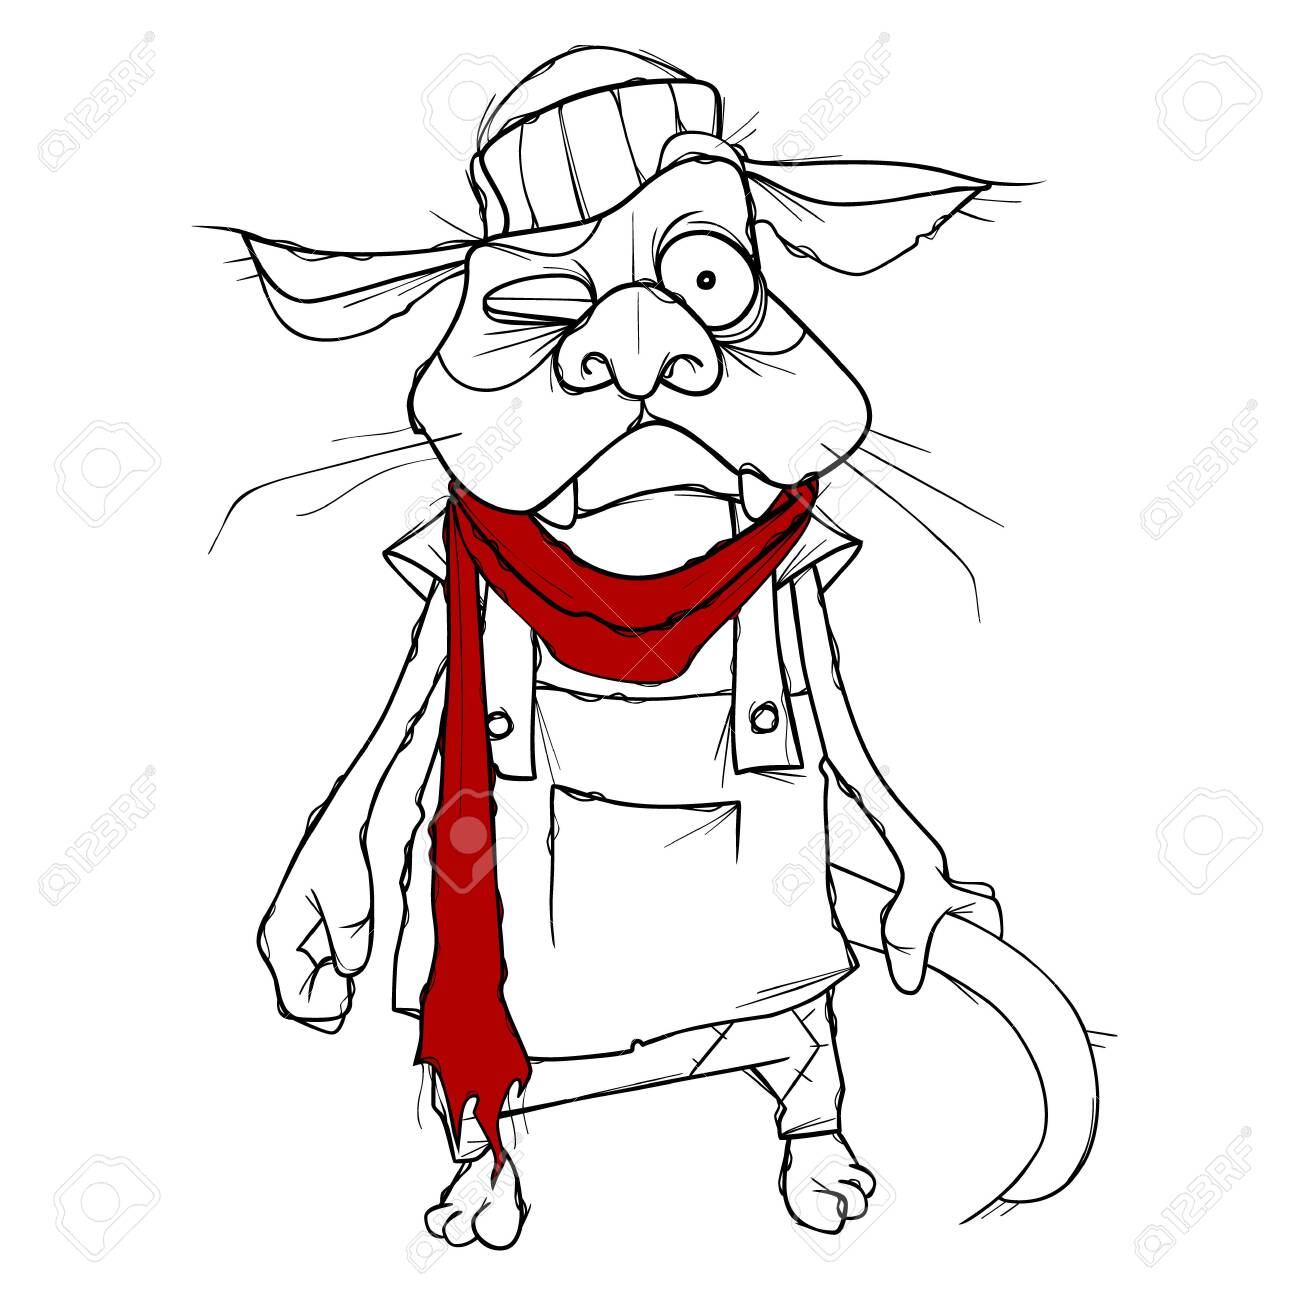 cartoon puzzled cat in clothes with red scarf - 146803230